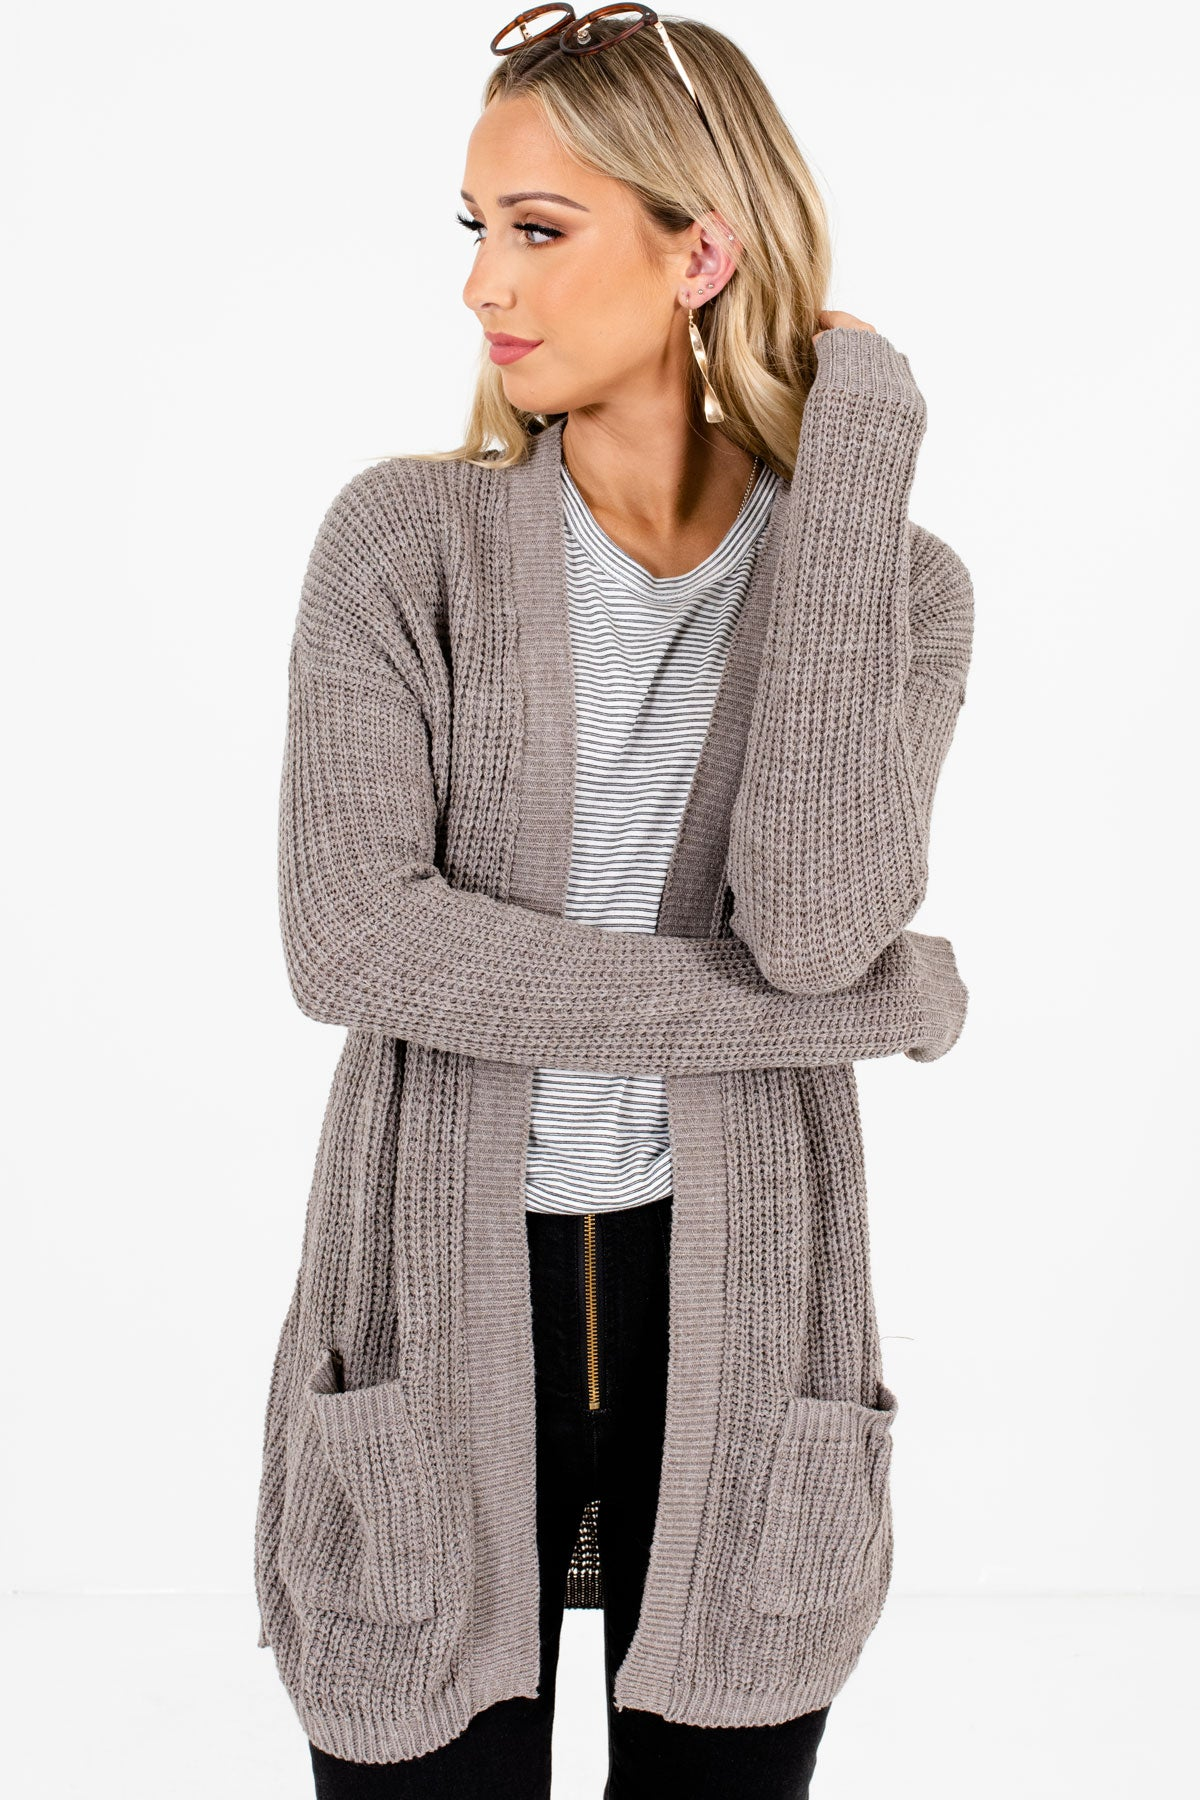 Gray High-Quality Knit Material Boutique Cardigans for Women